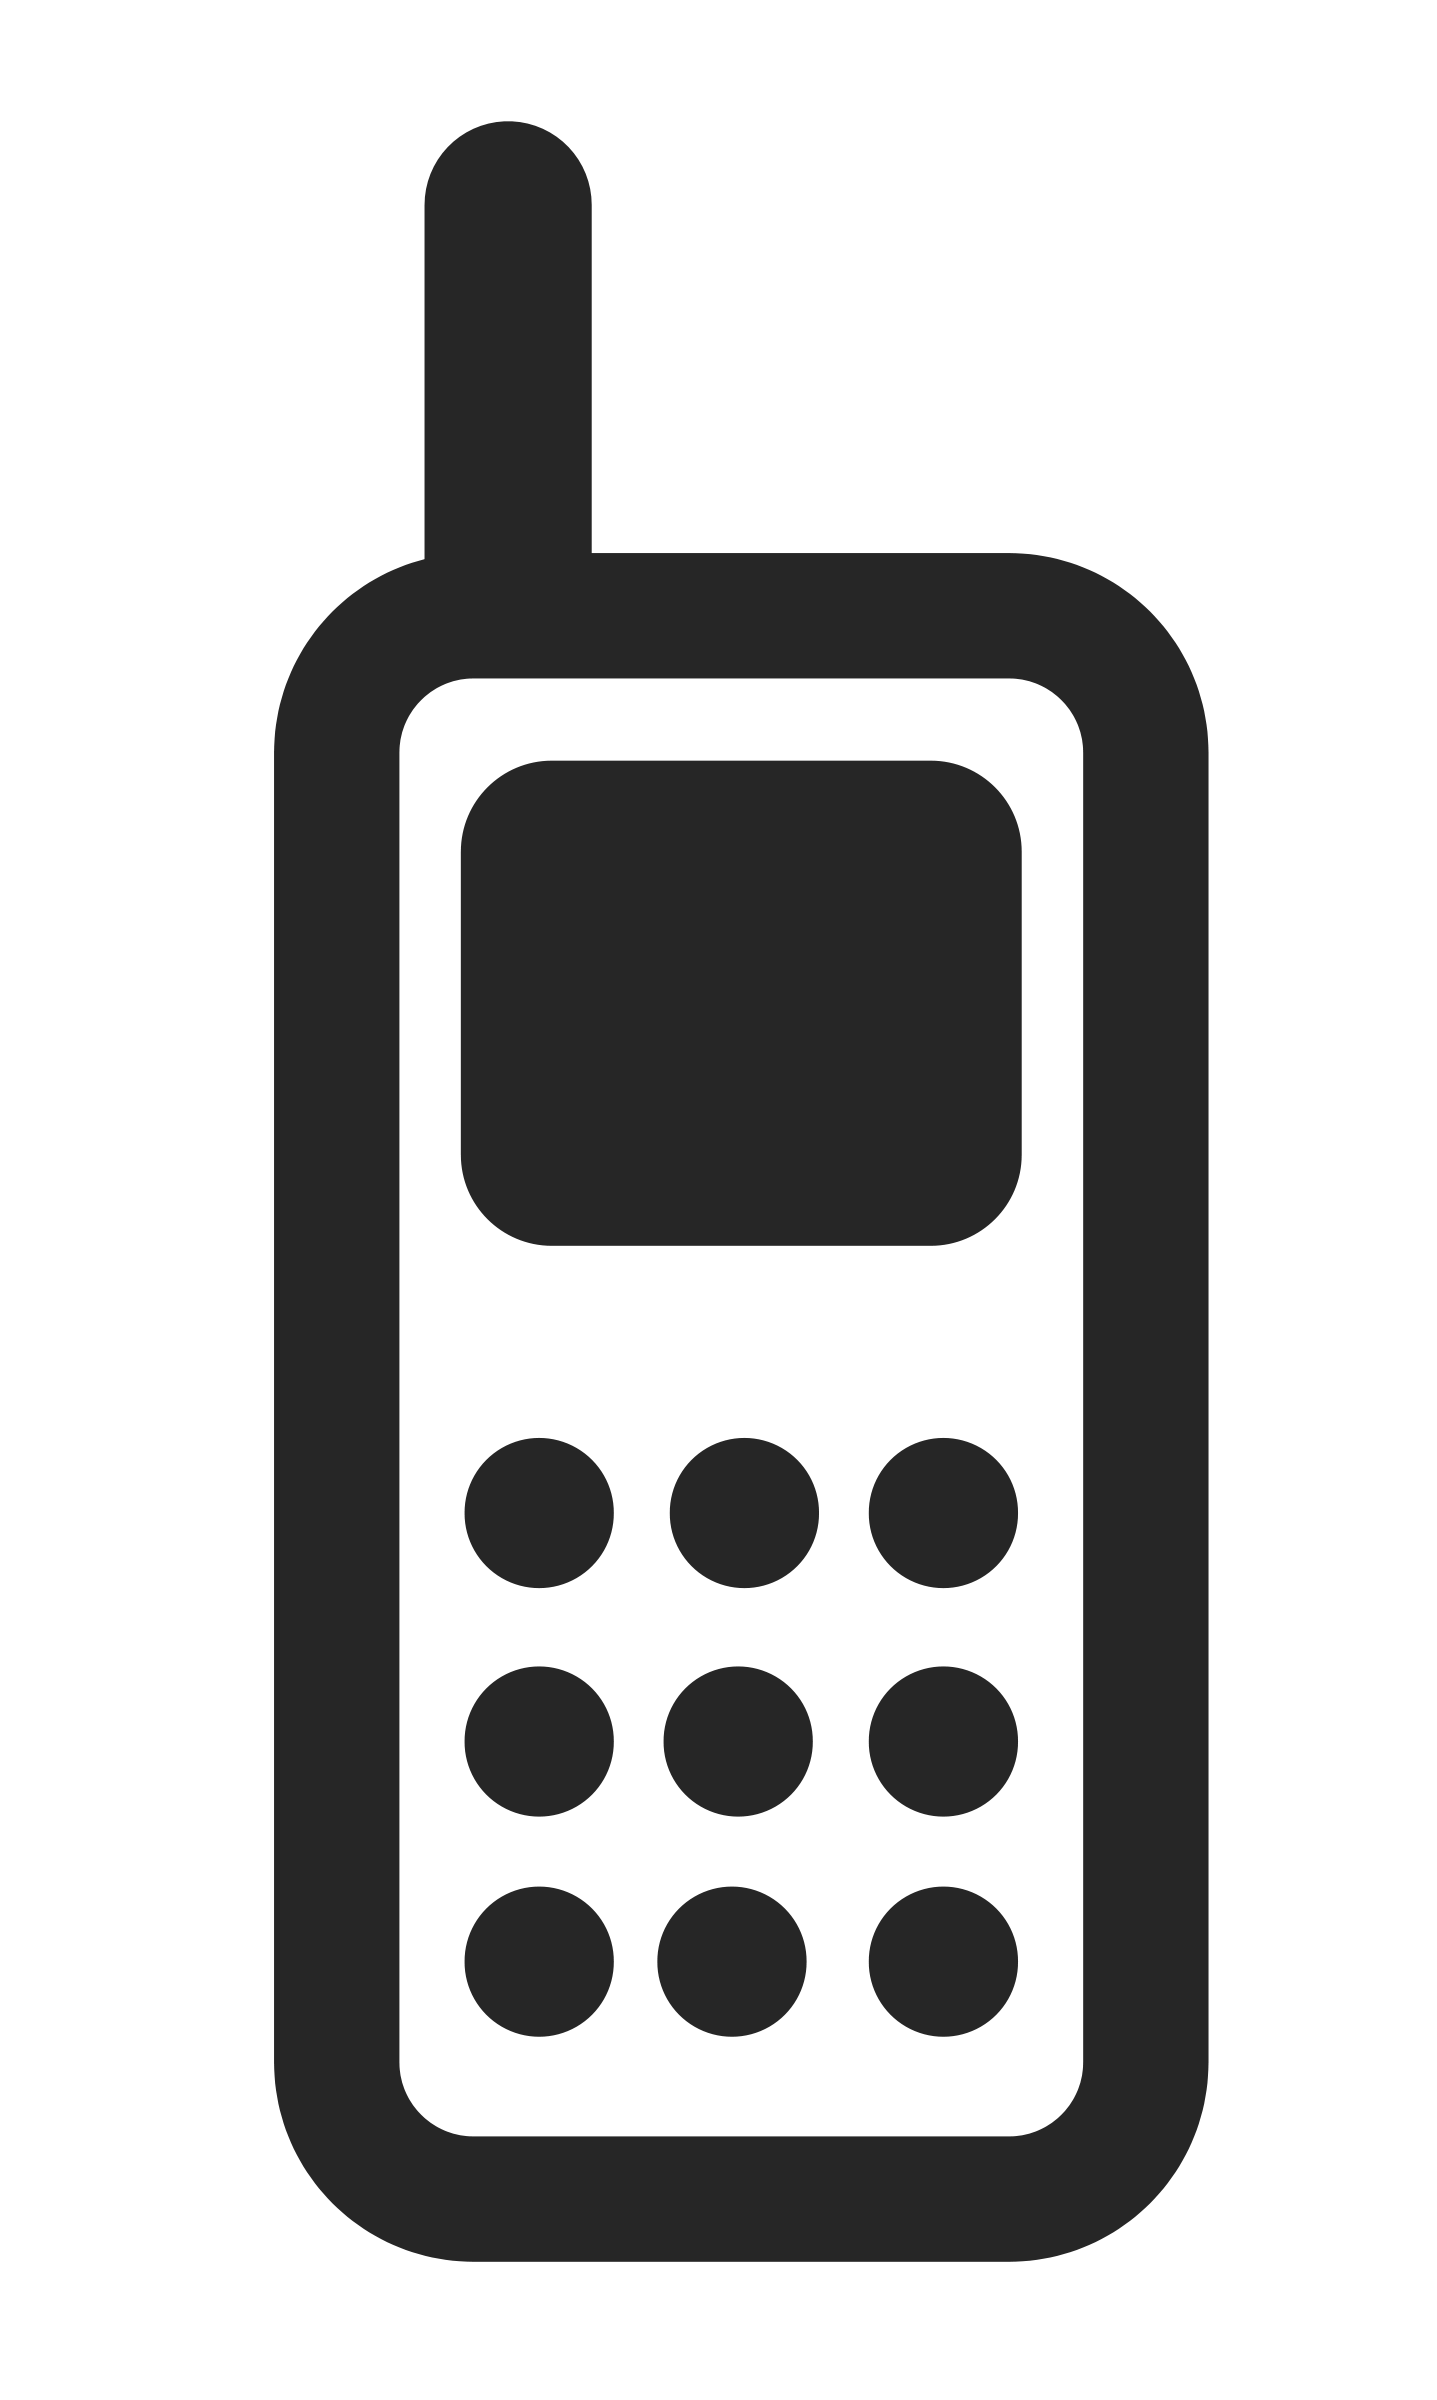 Phone icon images clipart vector transparent download Free Phone Icon Cliparts, Download Free Clip Art, Free Clip ... vector transparent download